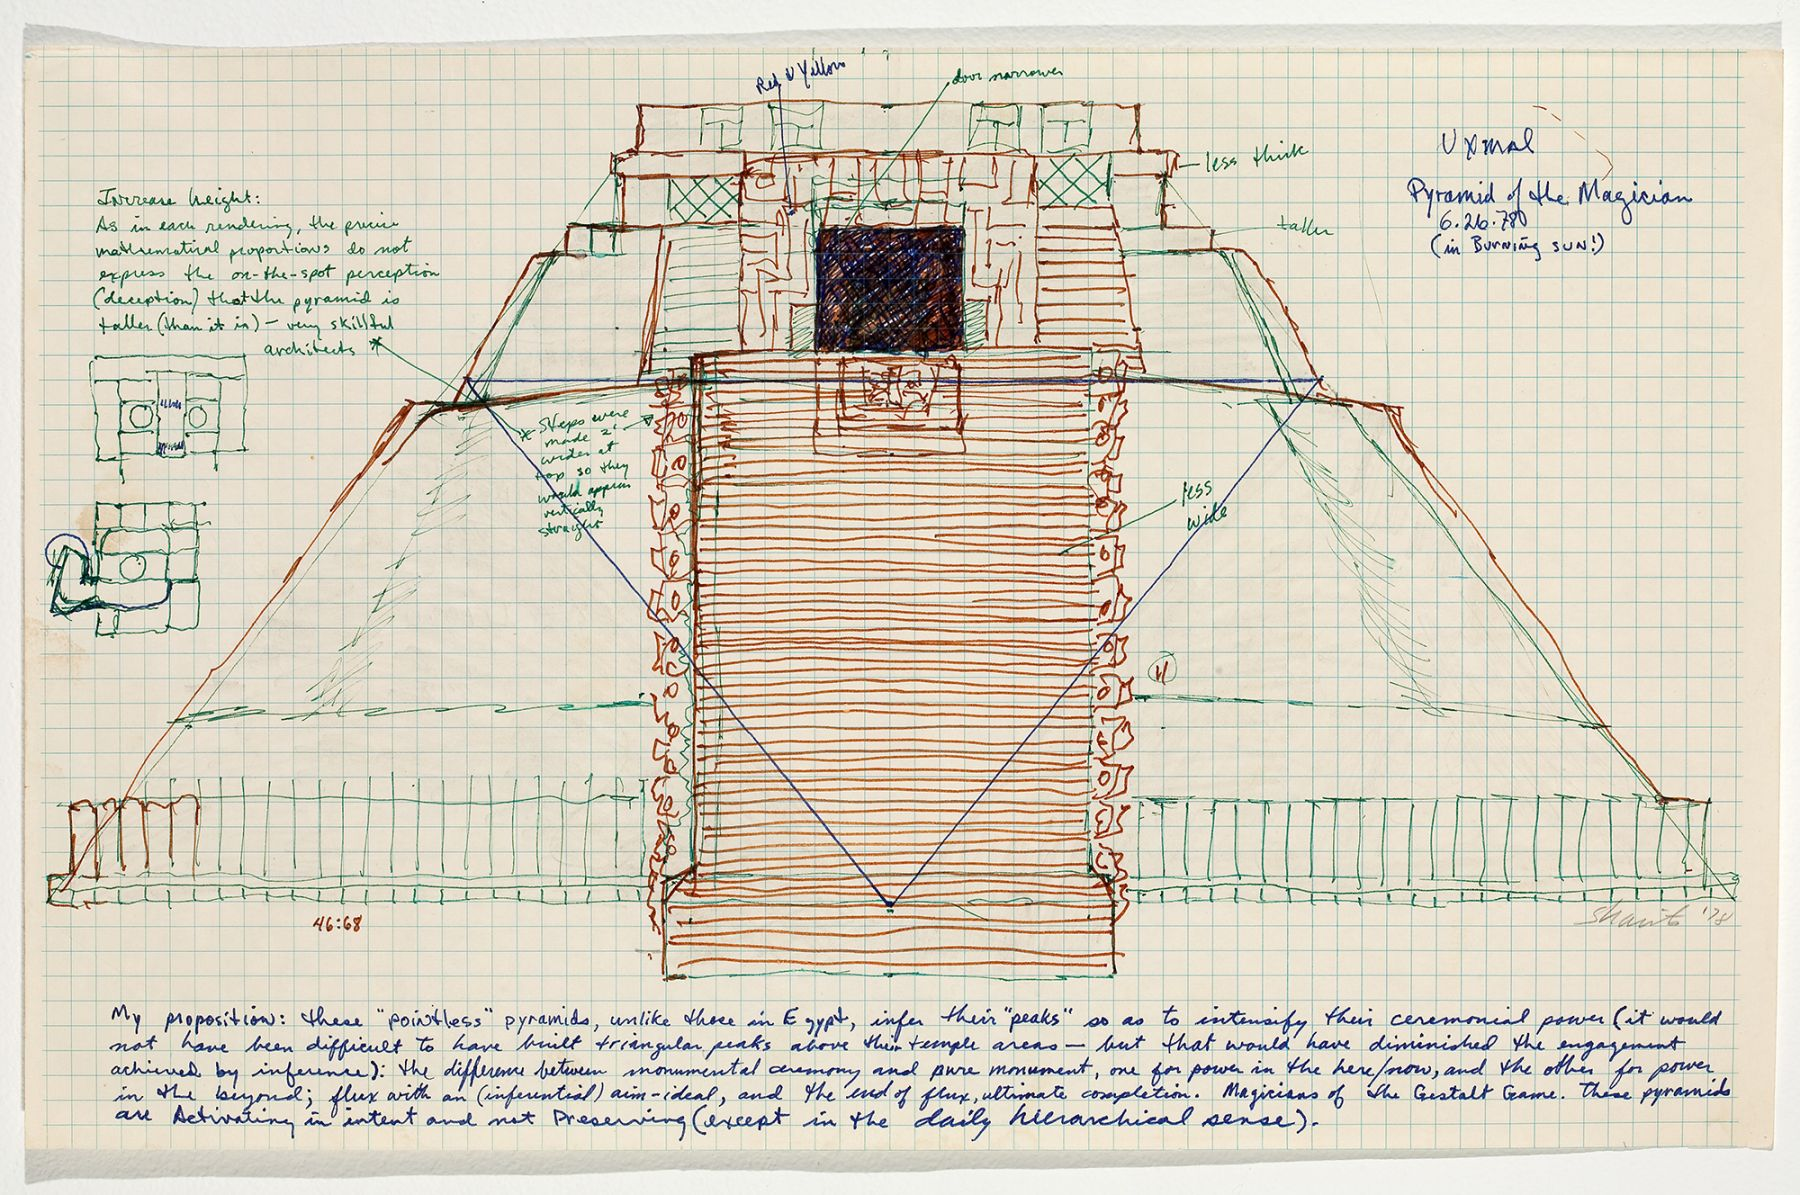 Paul Sharits, Uxmal Pyramid of the Magician, 1978, colored ink on paper, 11 x 17 1/2 inches